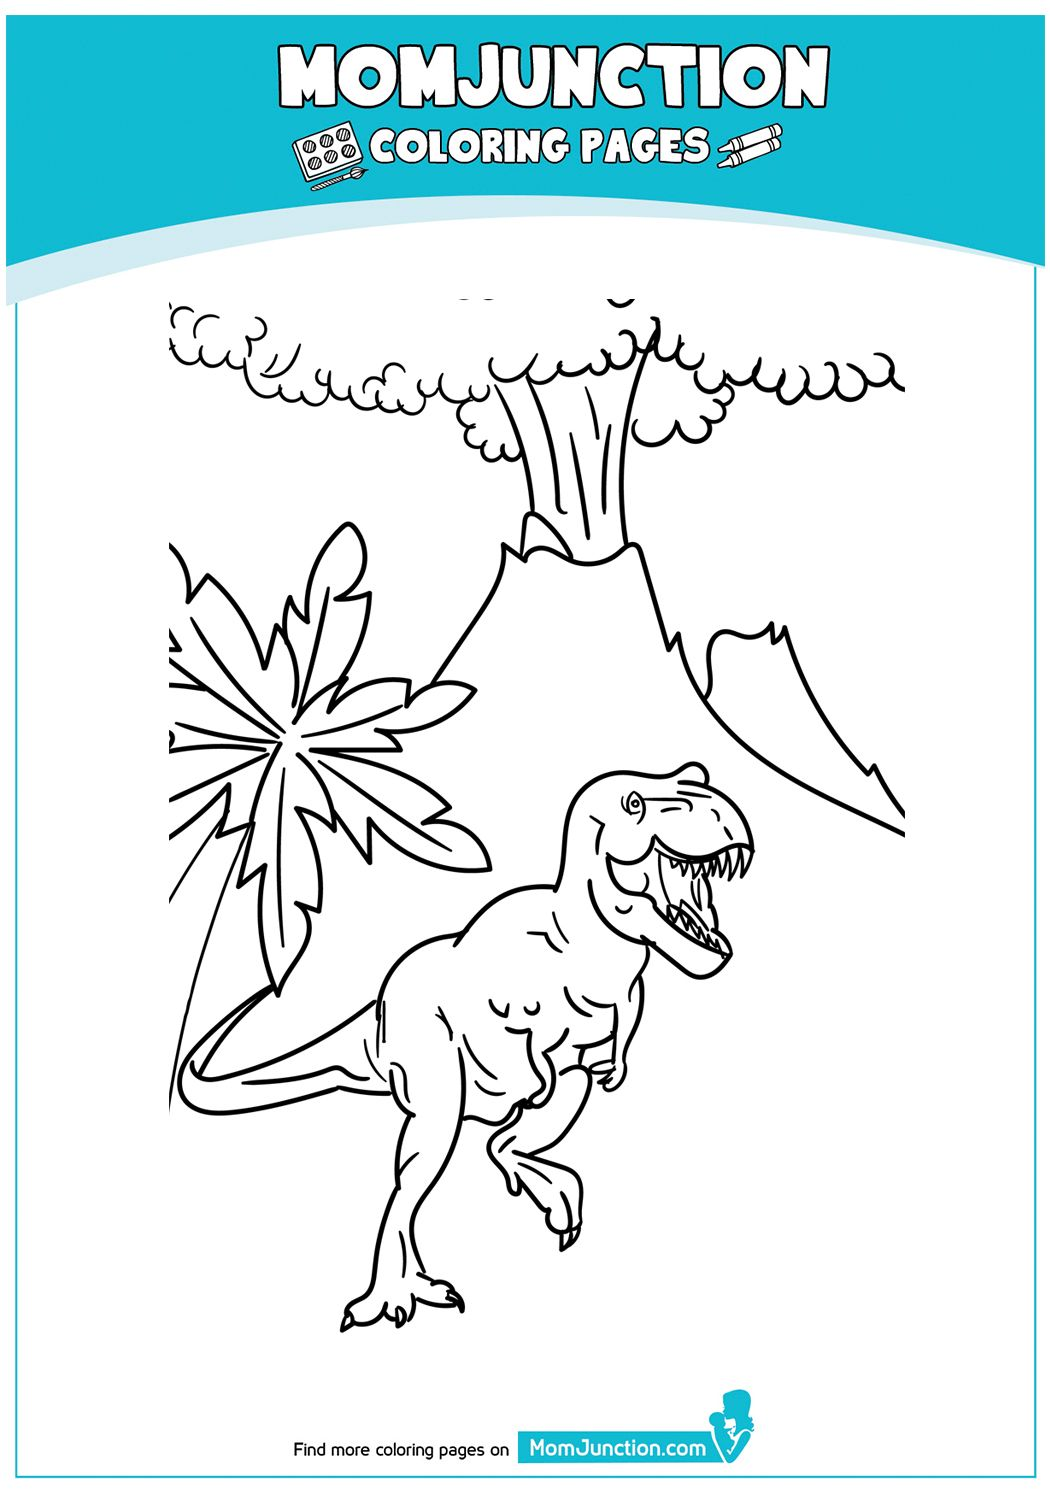 Coloring Page in 2020 Coloring pages, Color, Crafts for kids